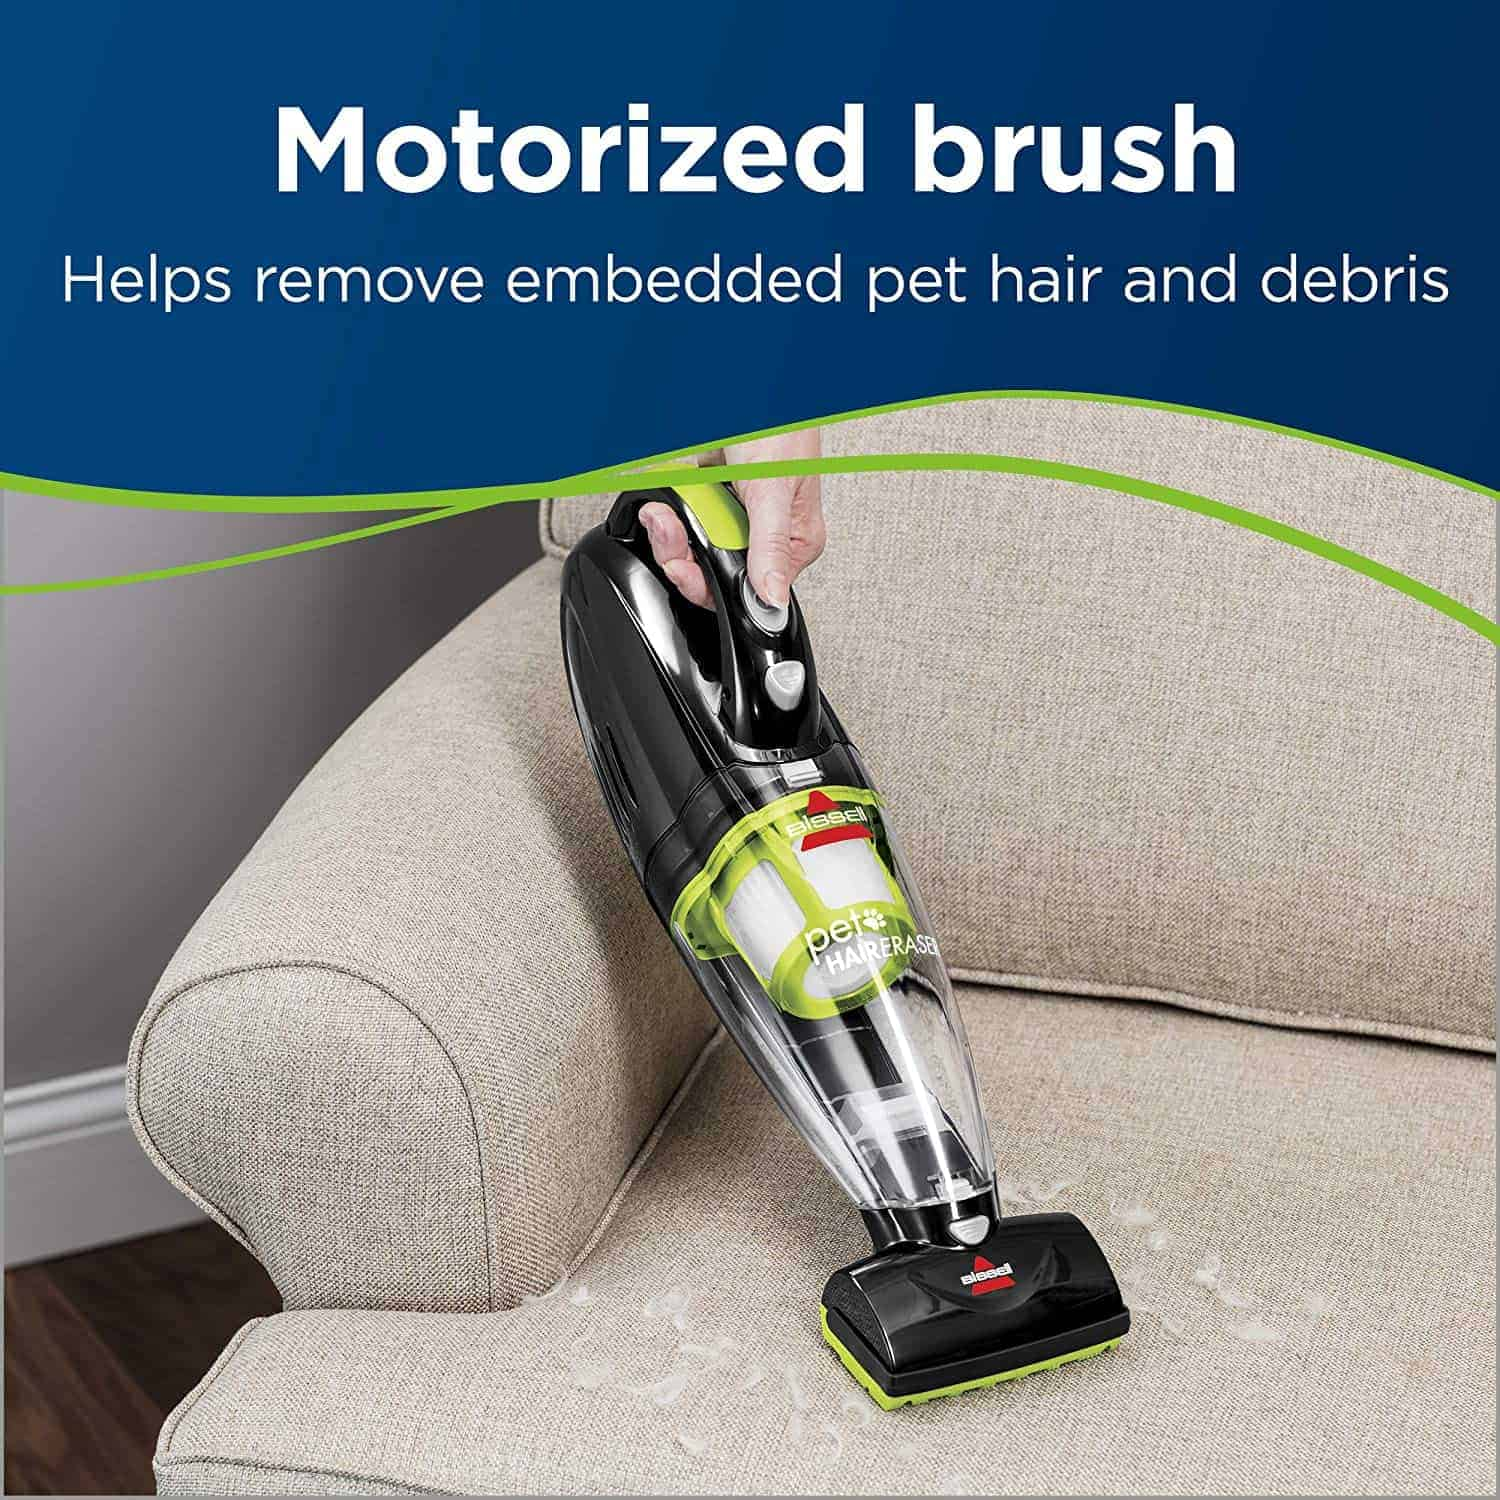 Best handheld vacuum cleaner for pets: Bissell Cordless Pet Hair Eraser